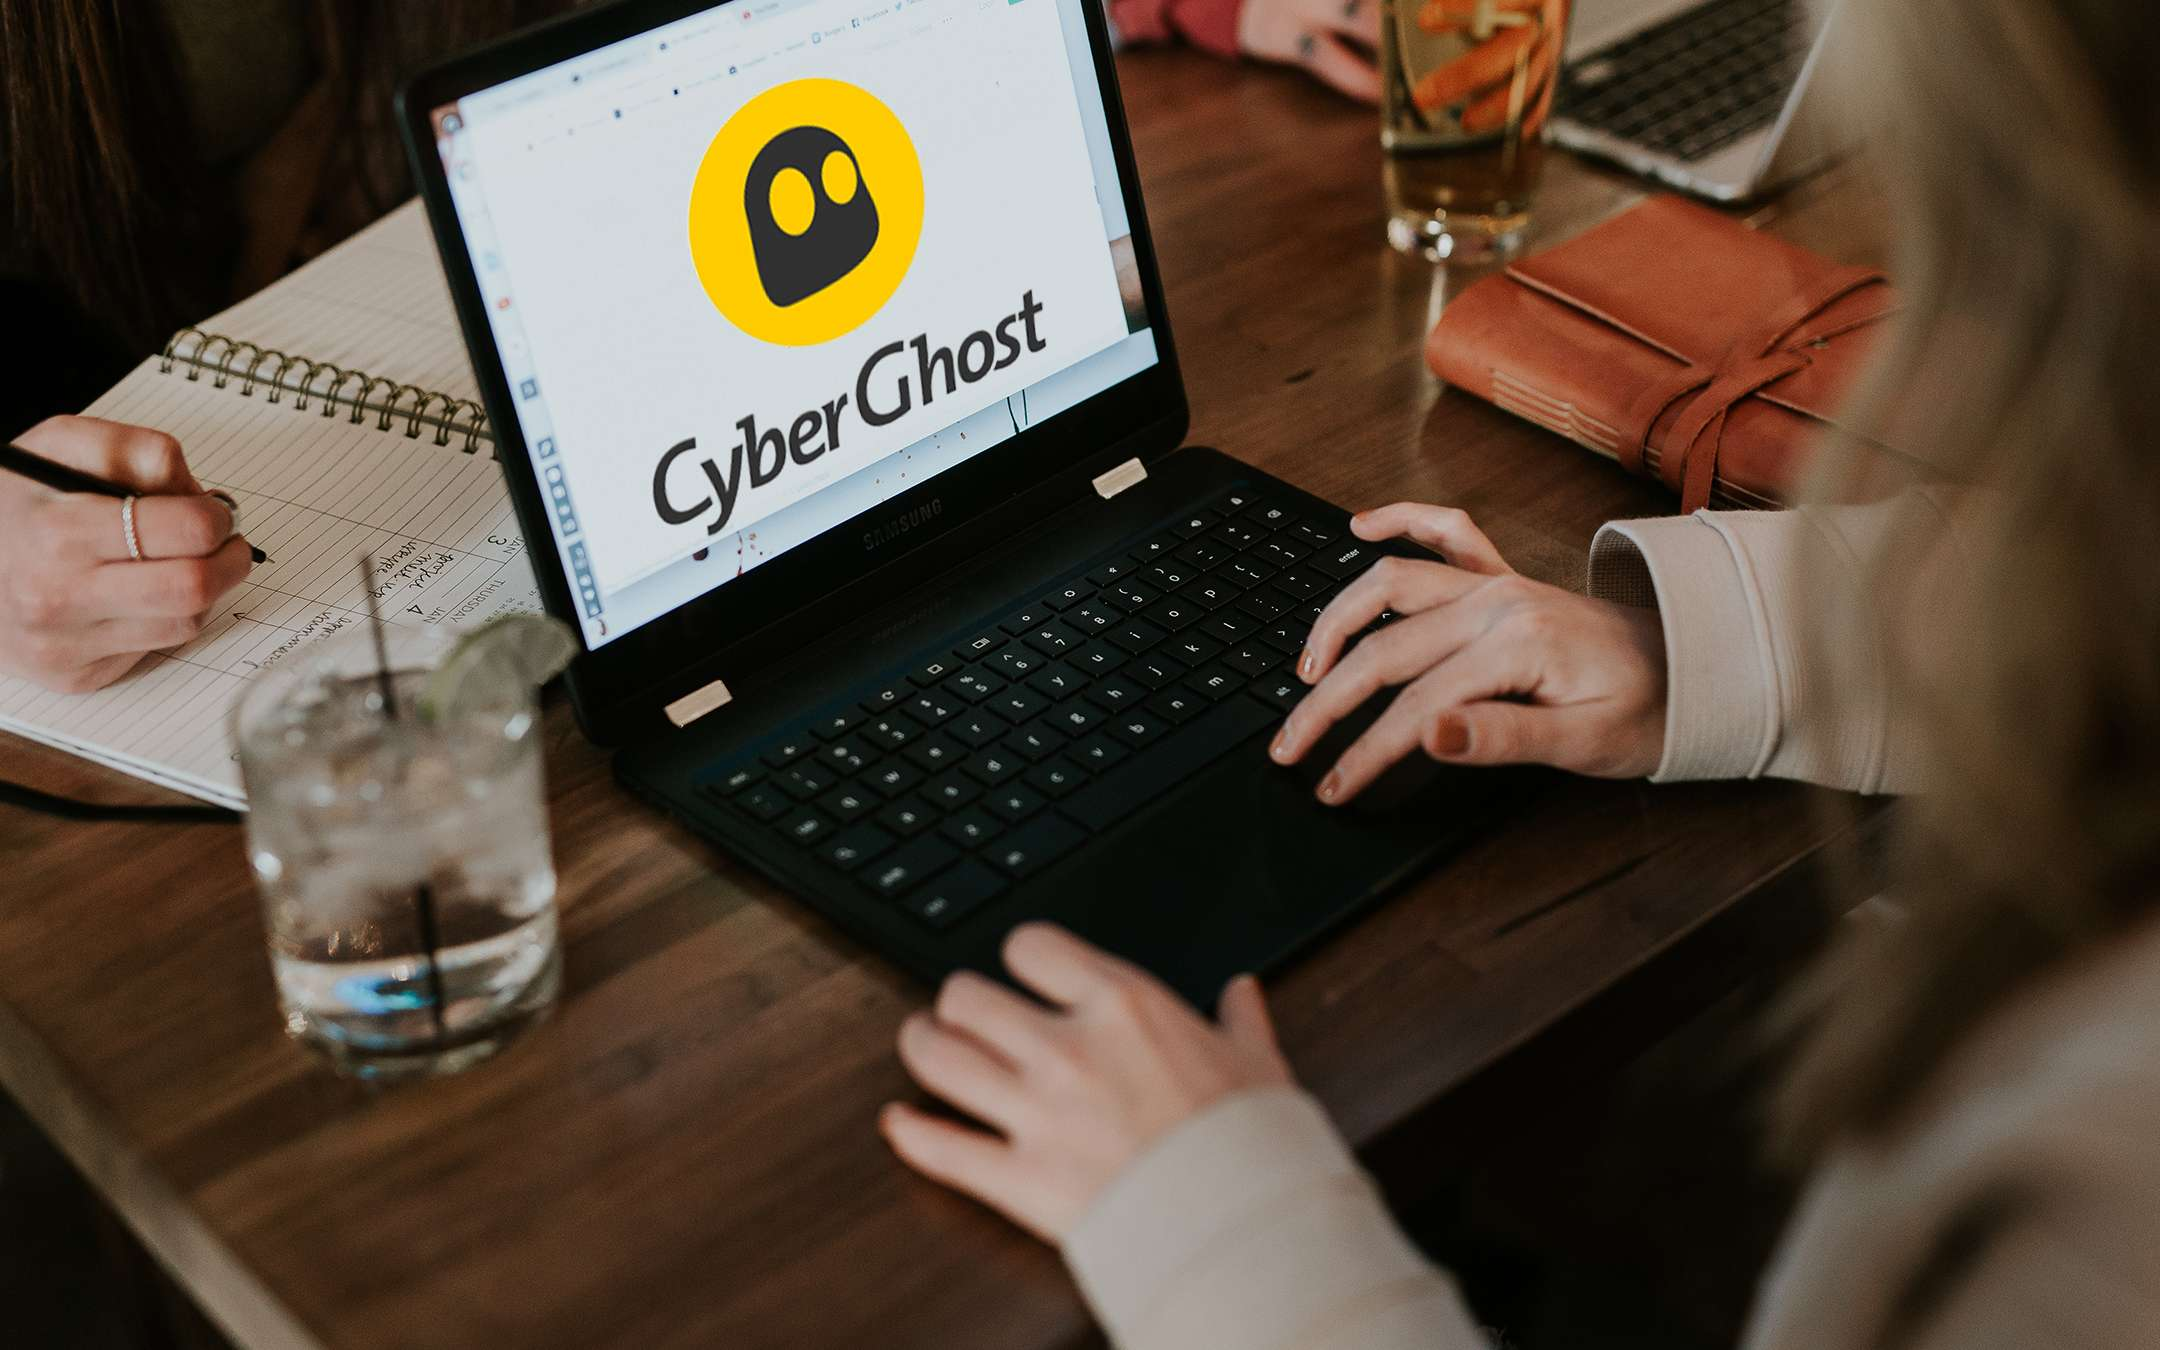 CyberGhost VPN: Review, Features, and Pricing